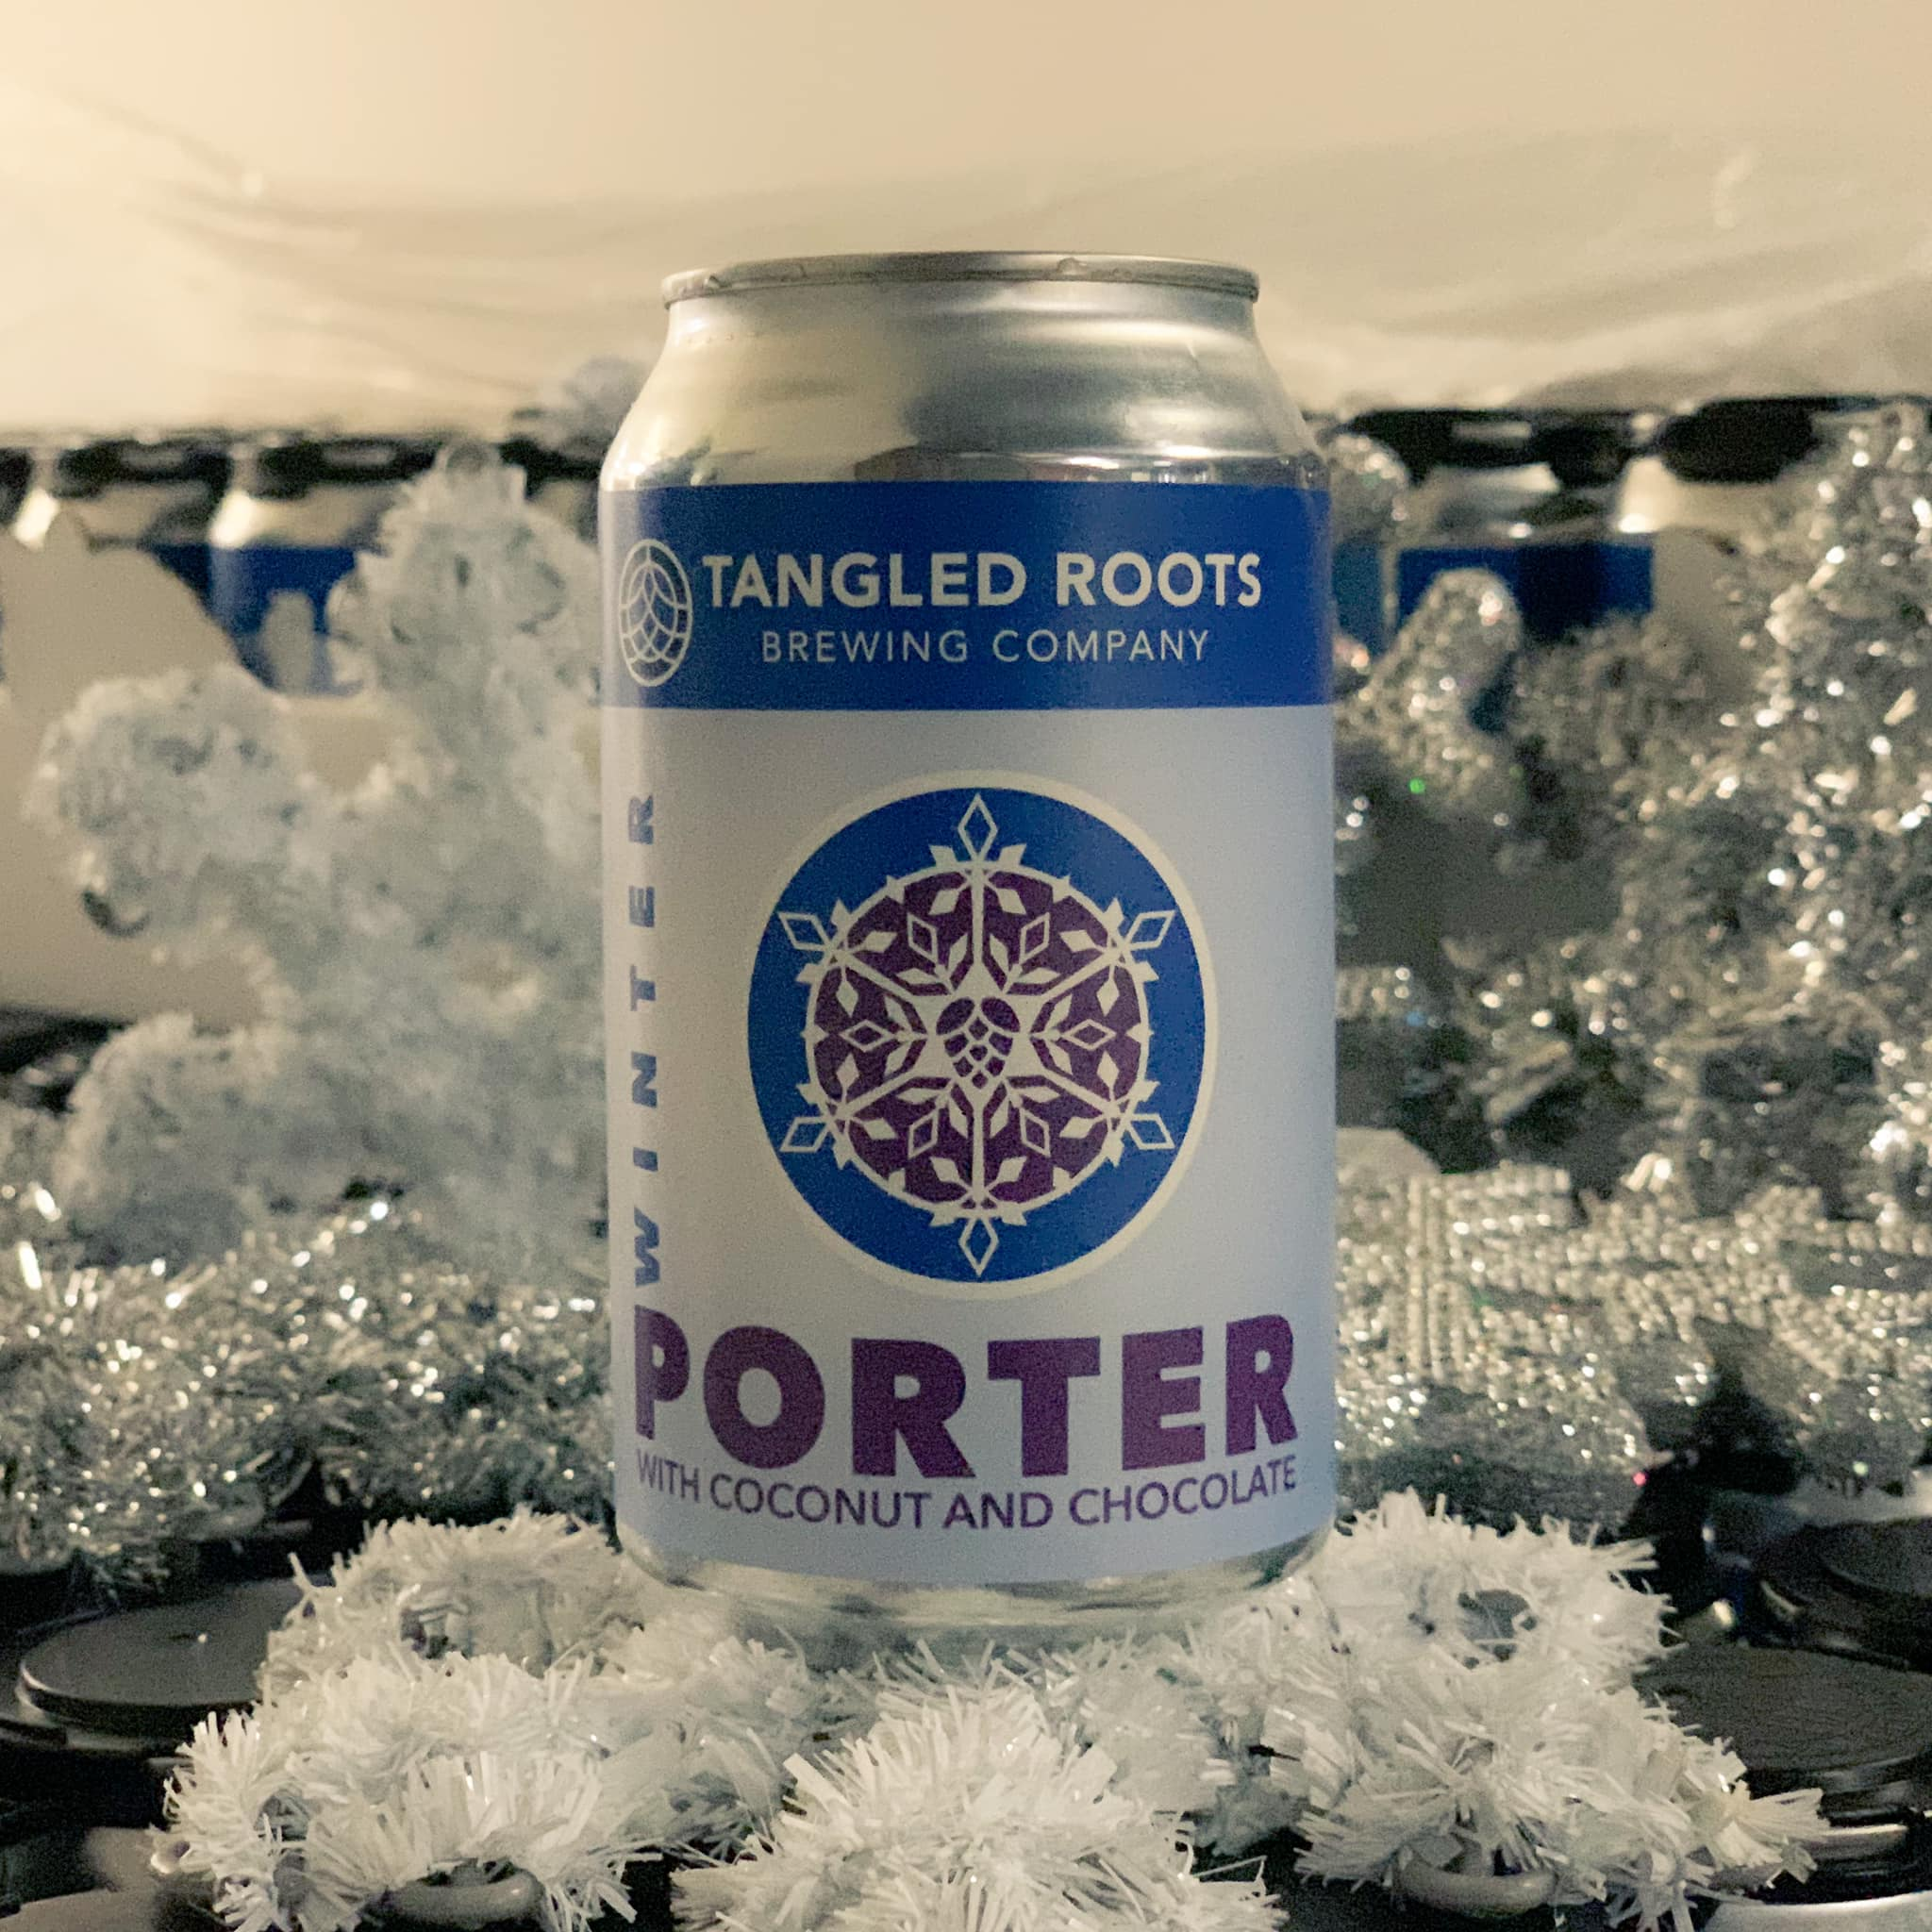 Can of Winter Porter from Tangled Roots, surrounded by snowflake decorations